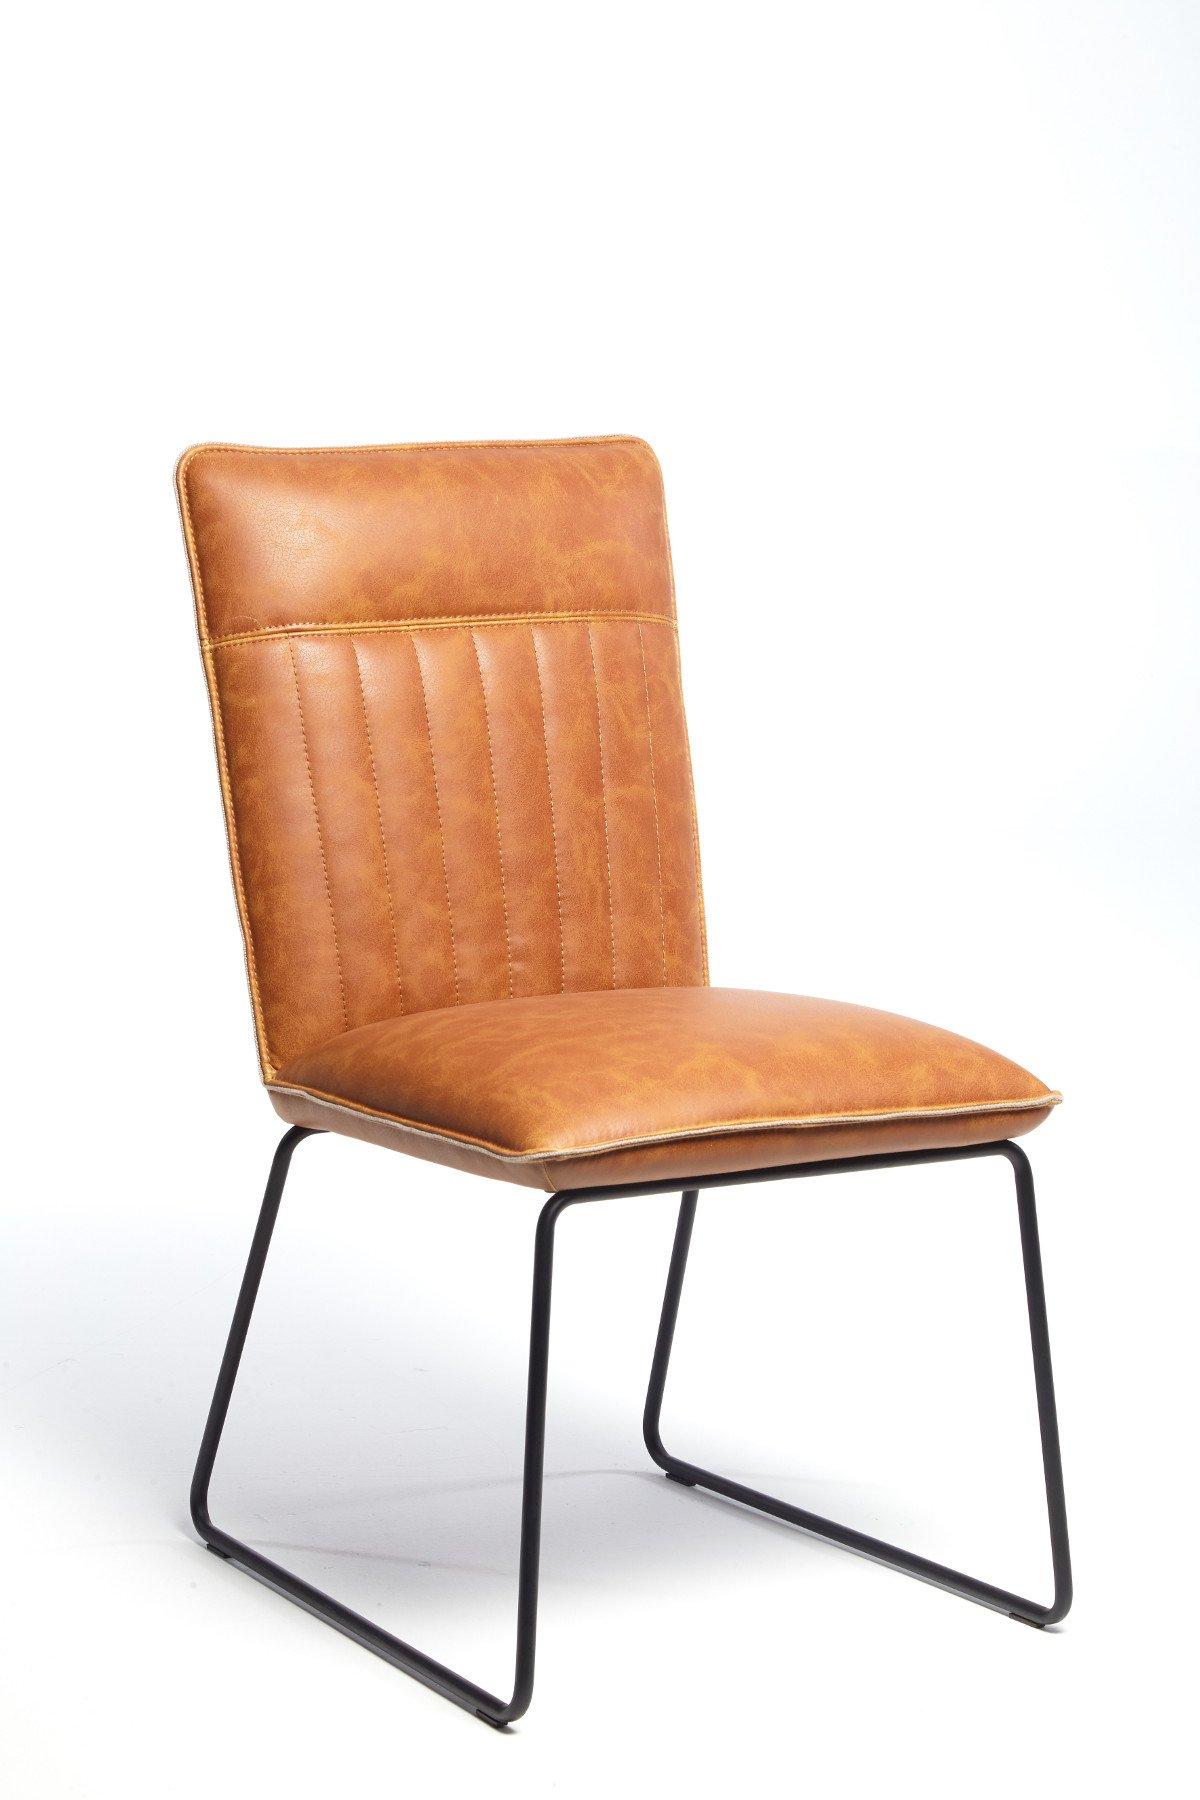 METRO TAN DINING CHAIR - ANGLE DETAIL